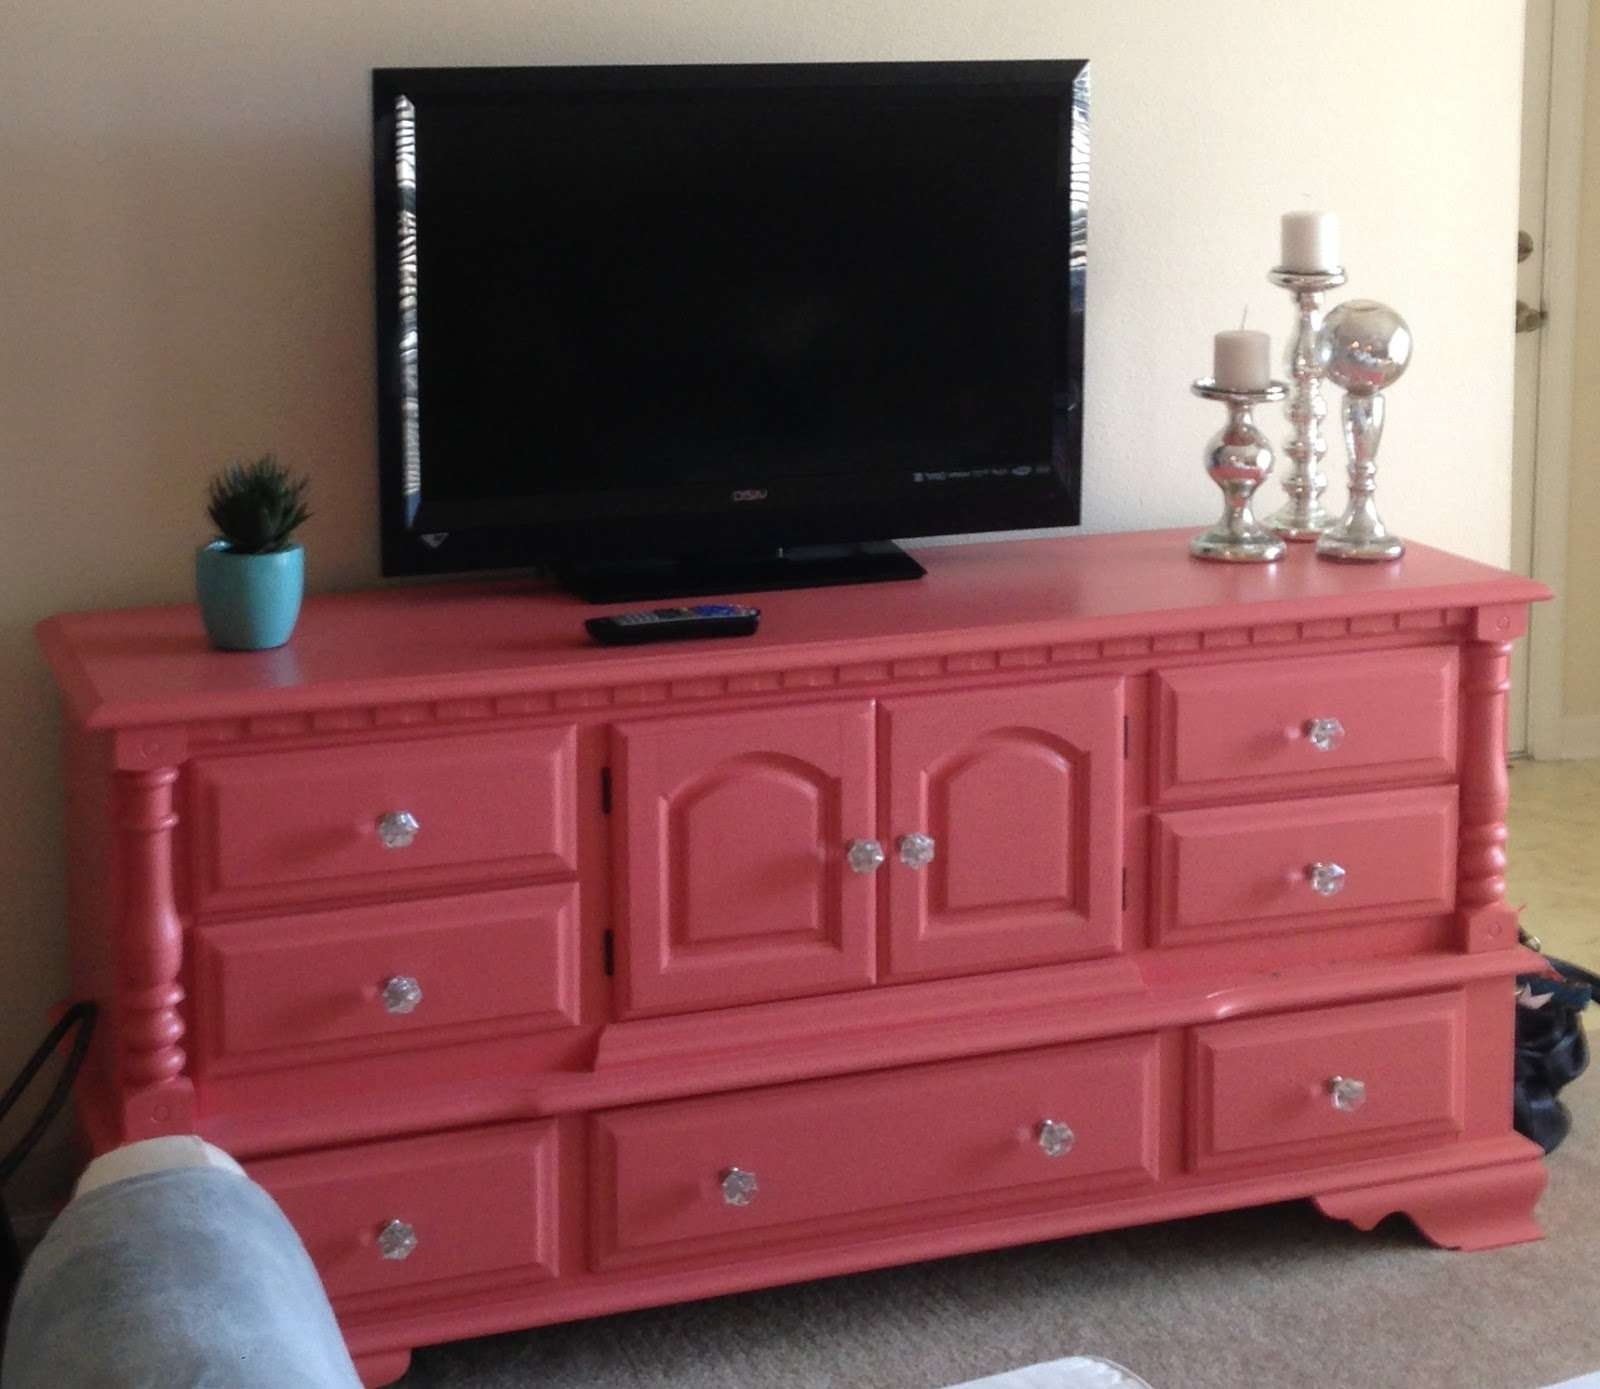 Sweet Techlink Opod Opr Tv Stand Gloss Red Tvs Up To Retro Chrome Pertaining To Rustic Red Tv Stands (View 10 of 15)